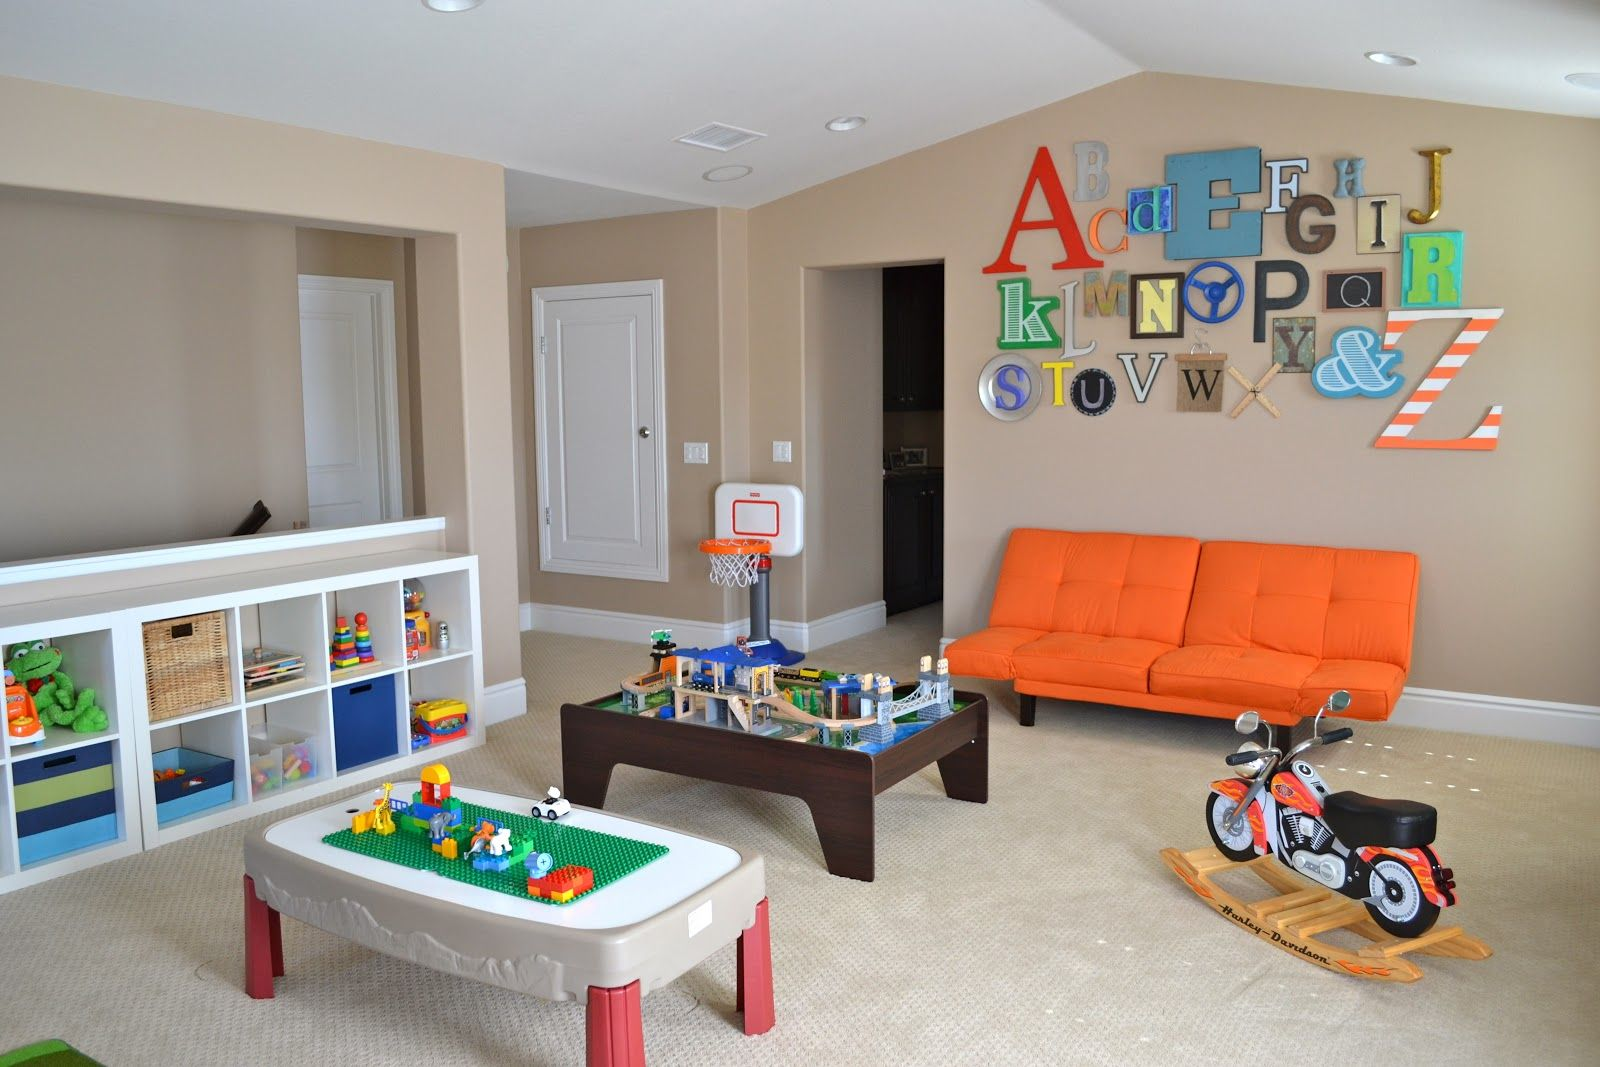 Fun Ideas For A Toddler S Room Home Decor. Making a Playroom in your Attic   Playrooms  Google search and Walls